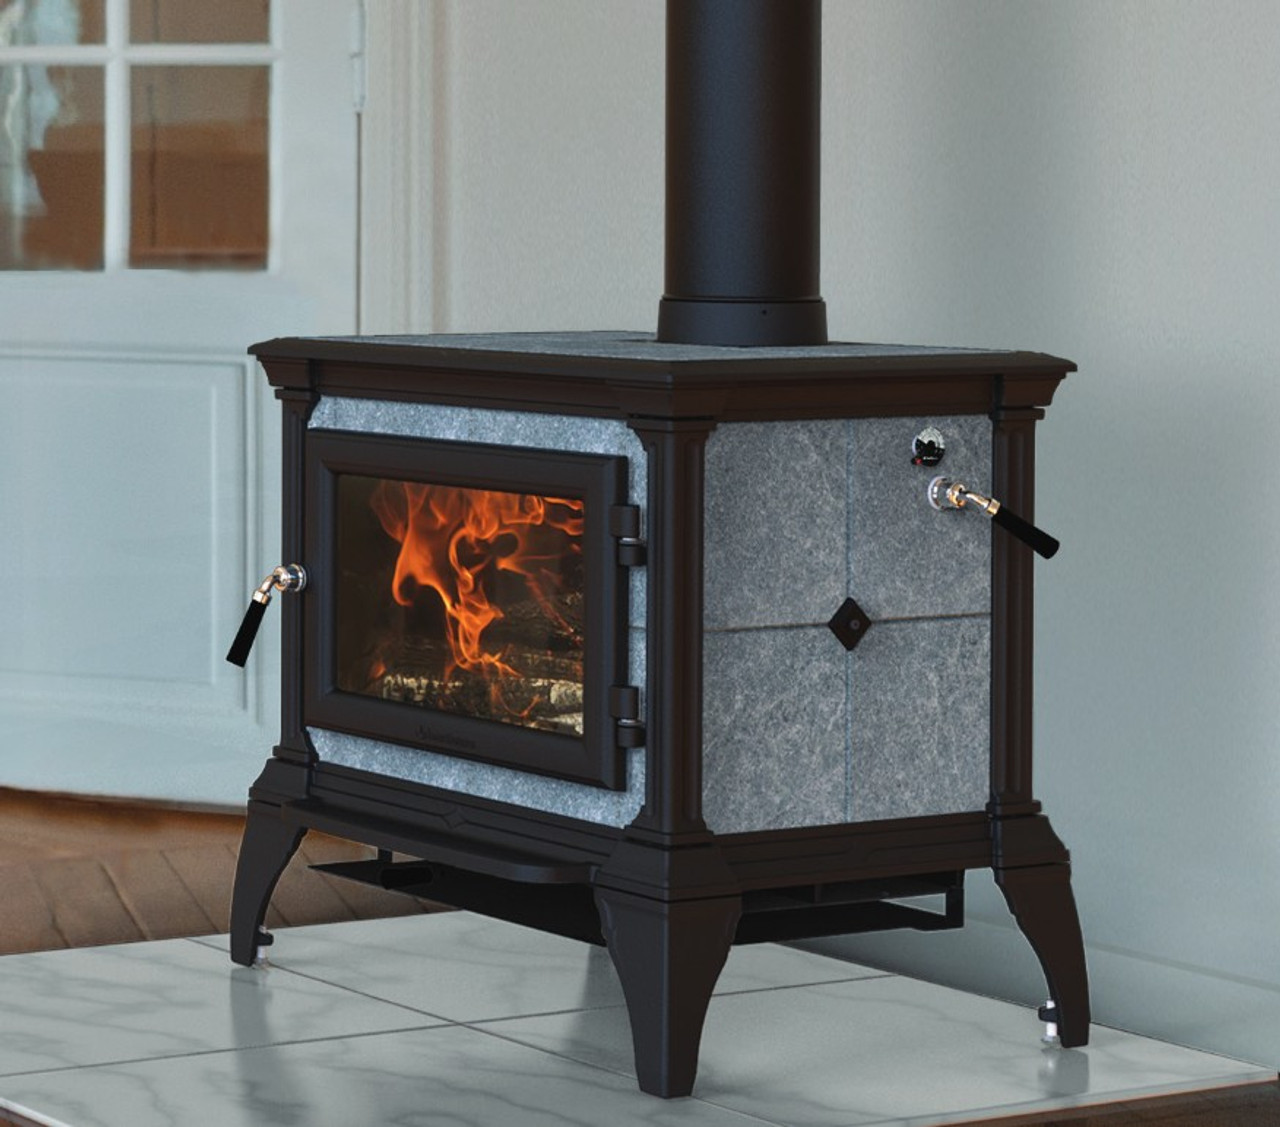 HearthStone Castleton 1 Wood Stove 8031 in Matte Black